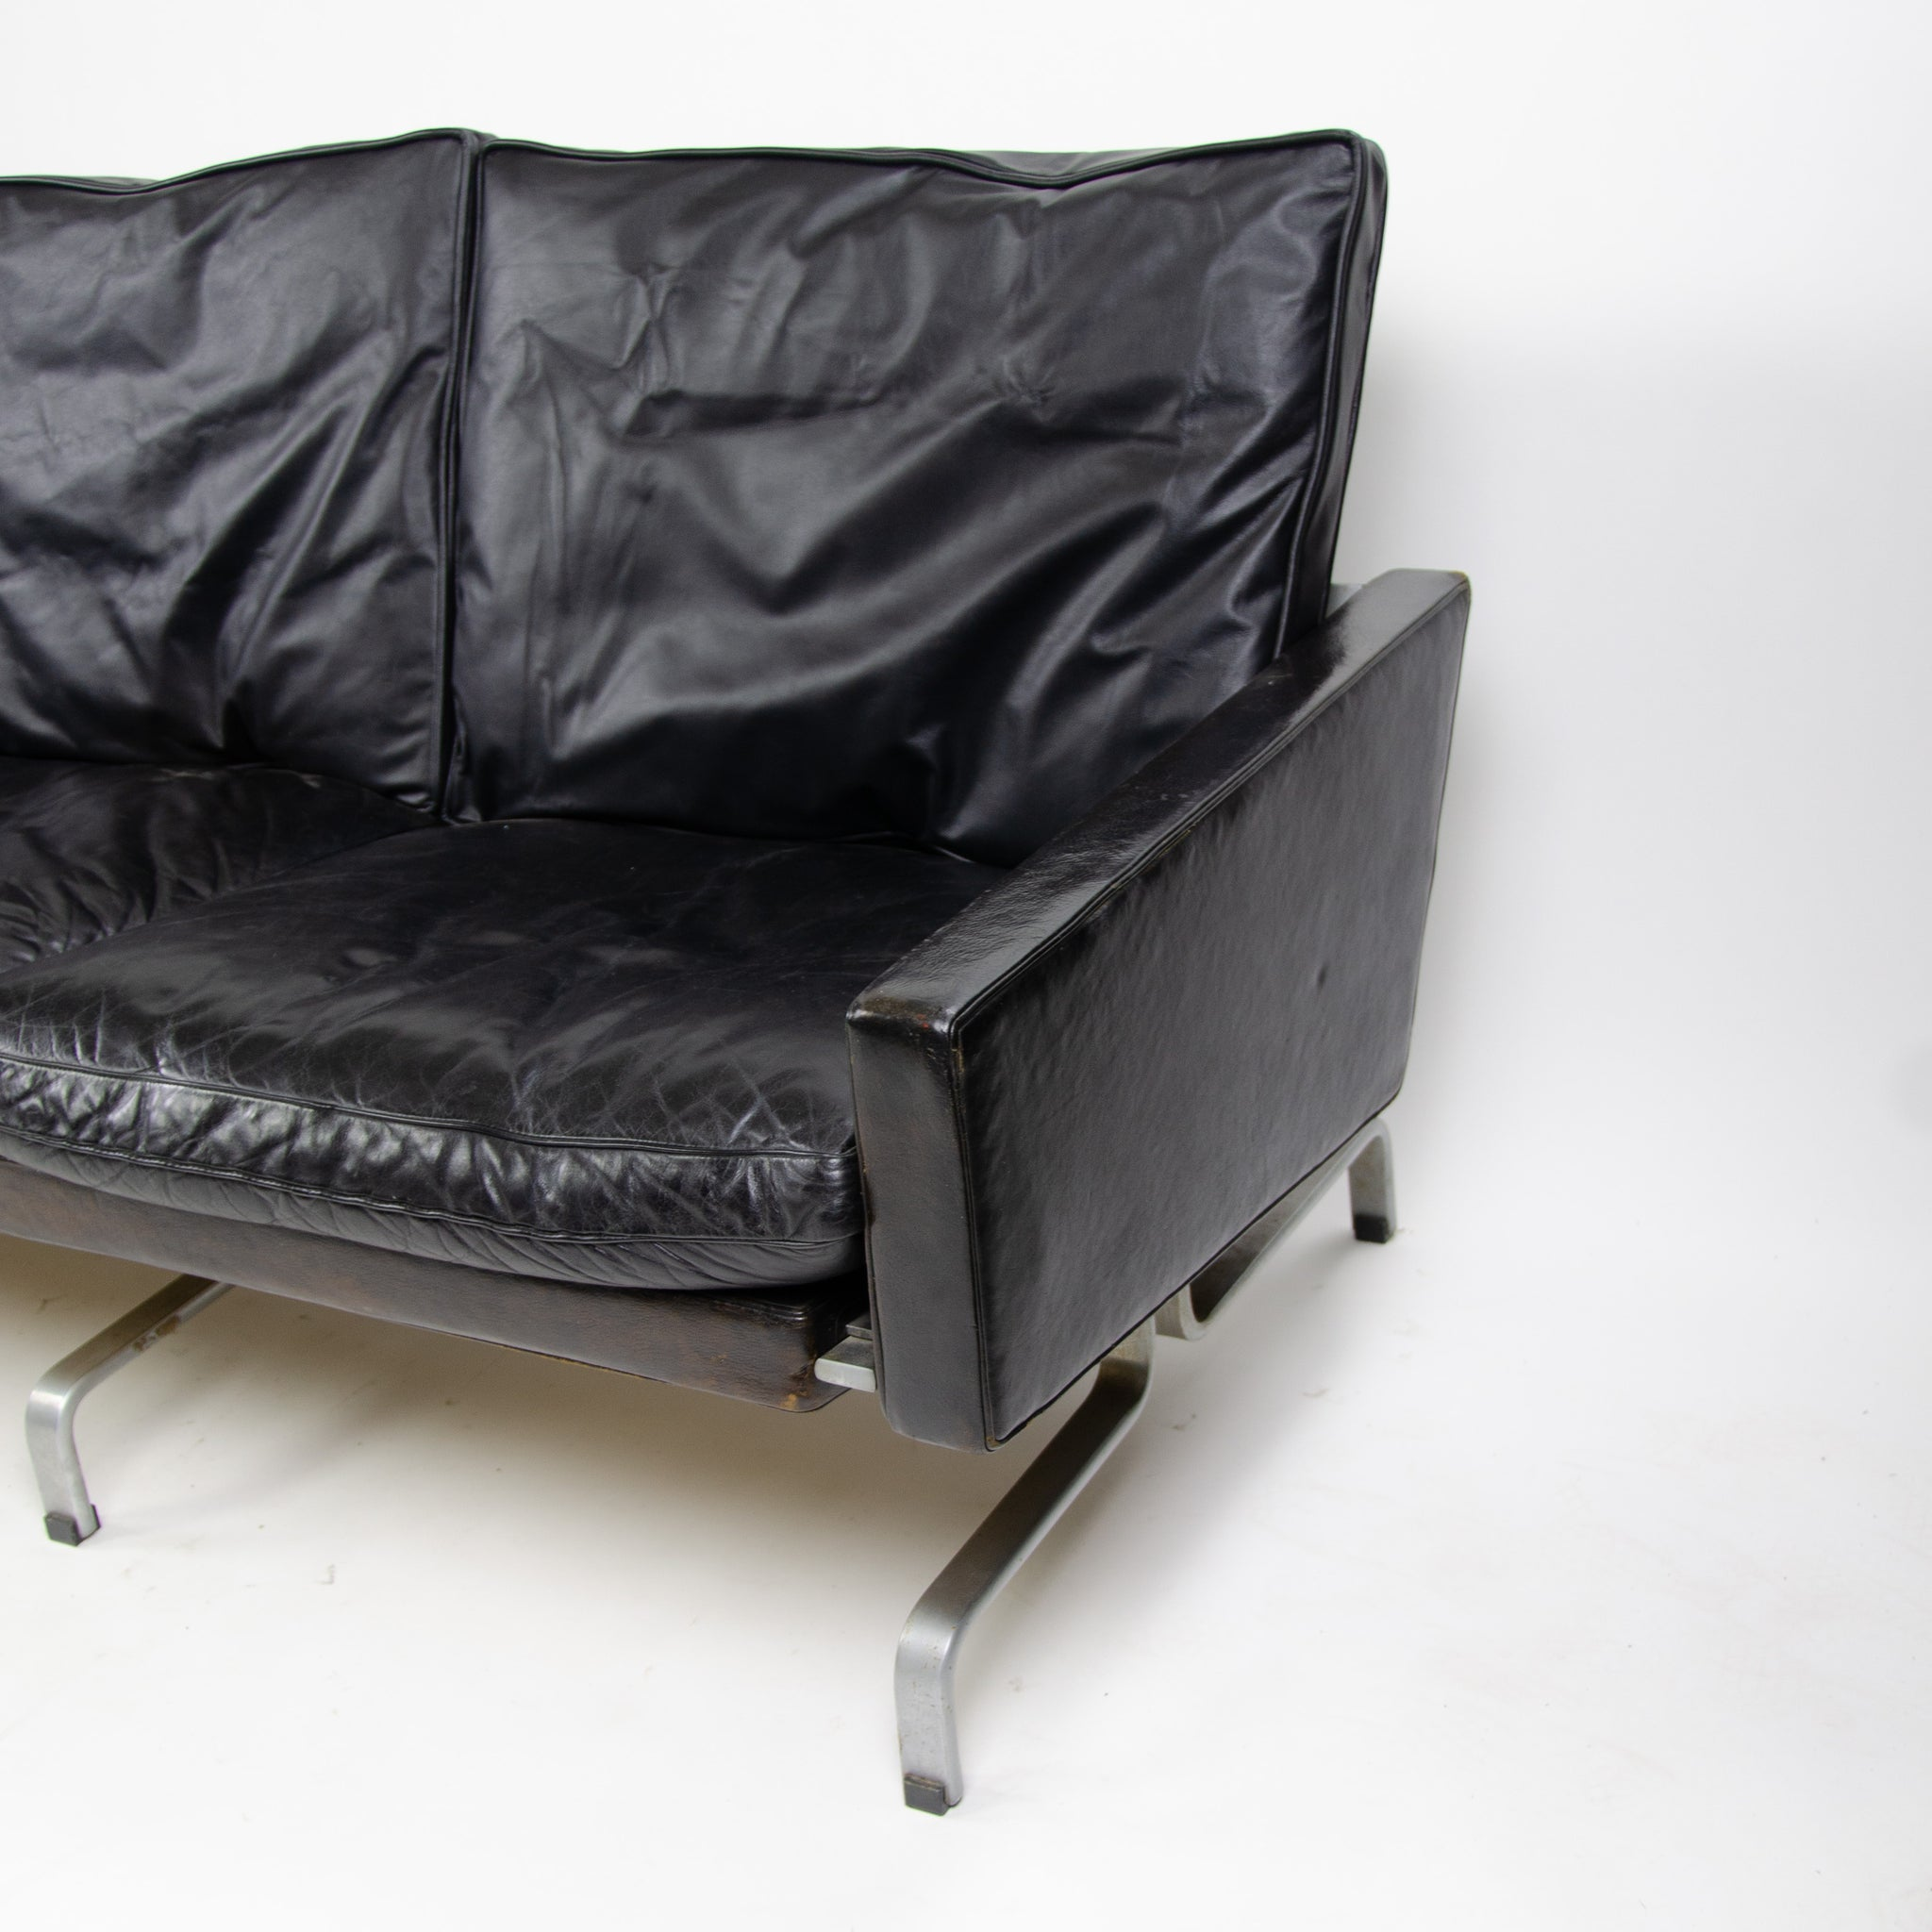 1960's Poul Kjaerholm PK31 3 Seater Sofa E Kold Christensen Fritz Hansen Black Leather